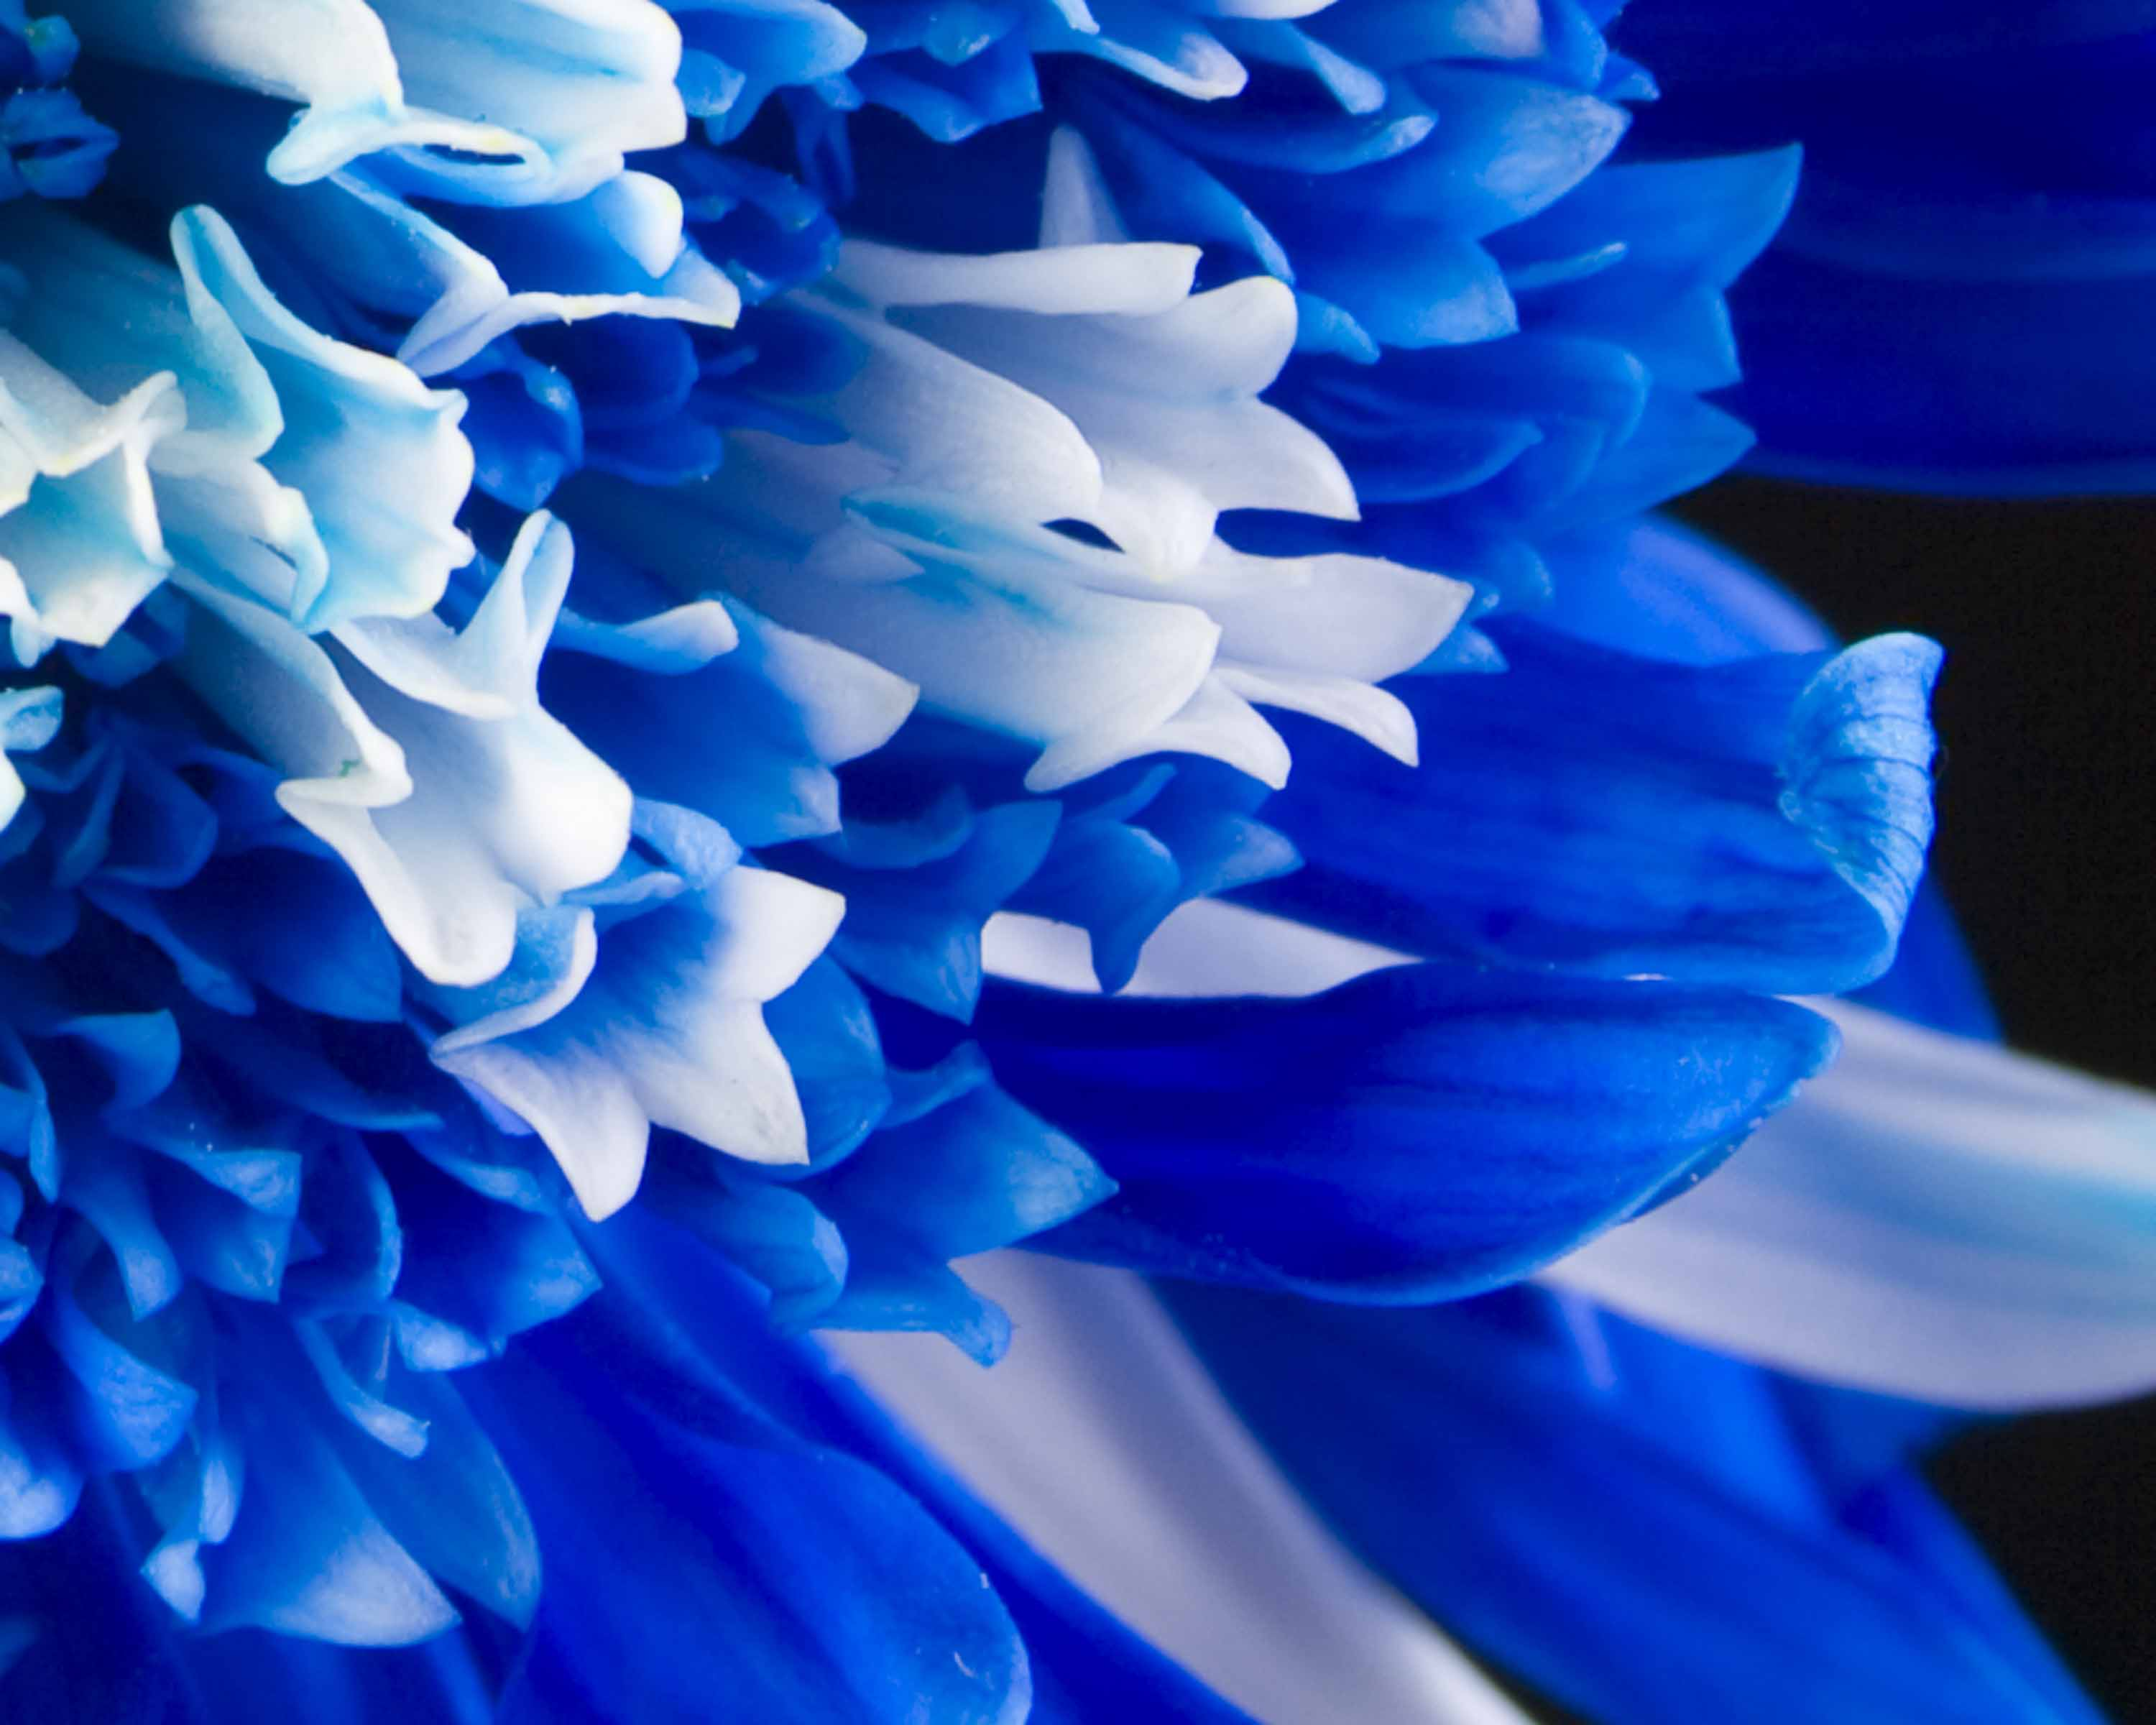 Blue Flowers Wallpapers High Quality Download Free